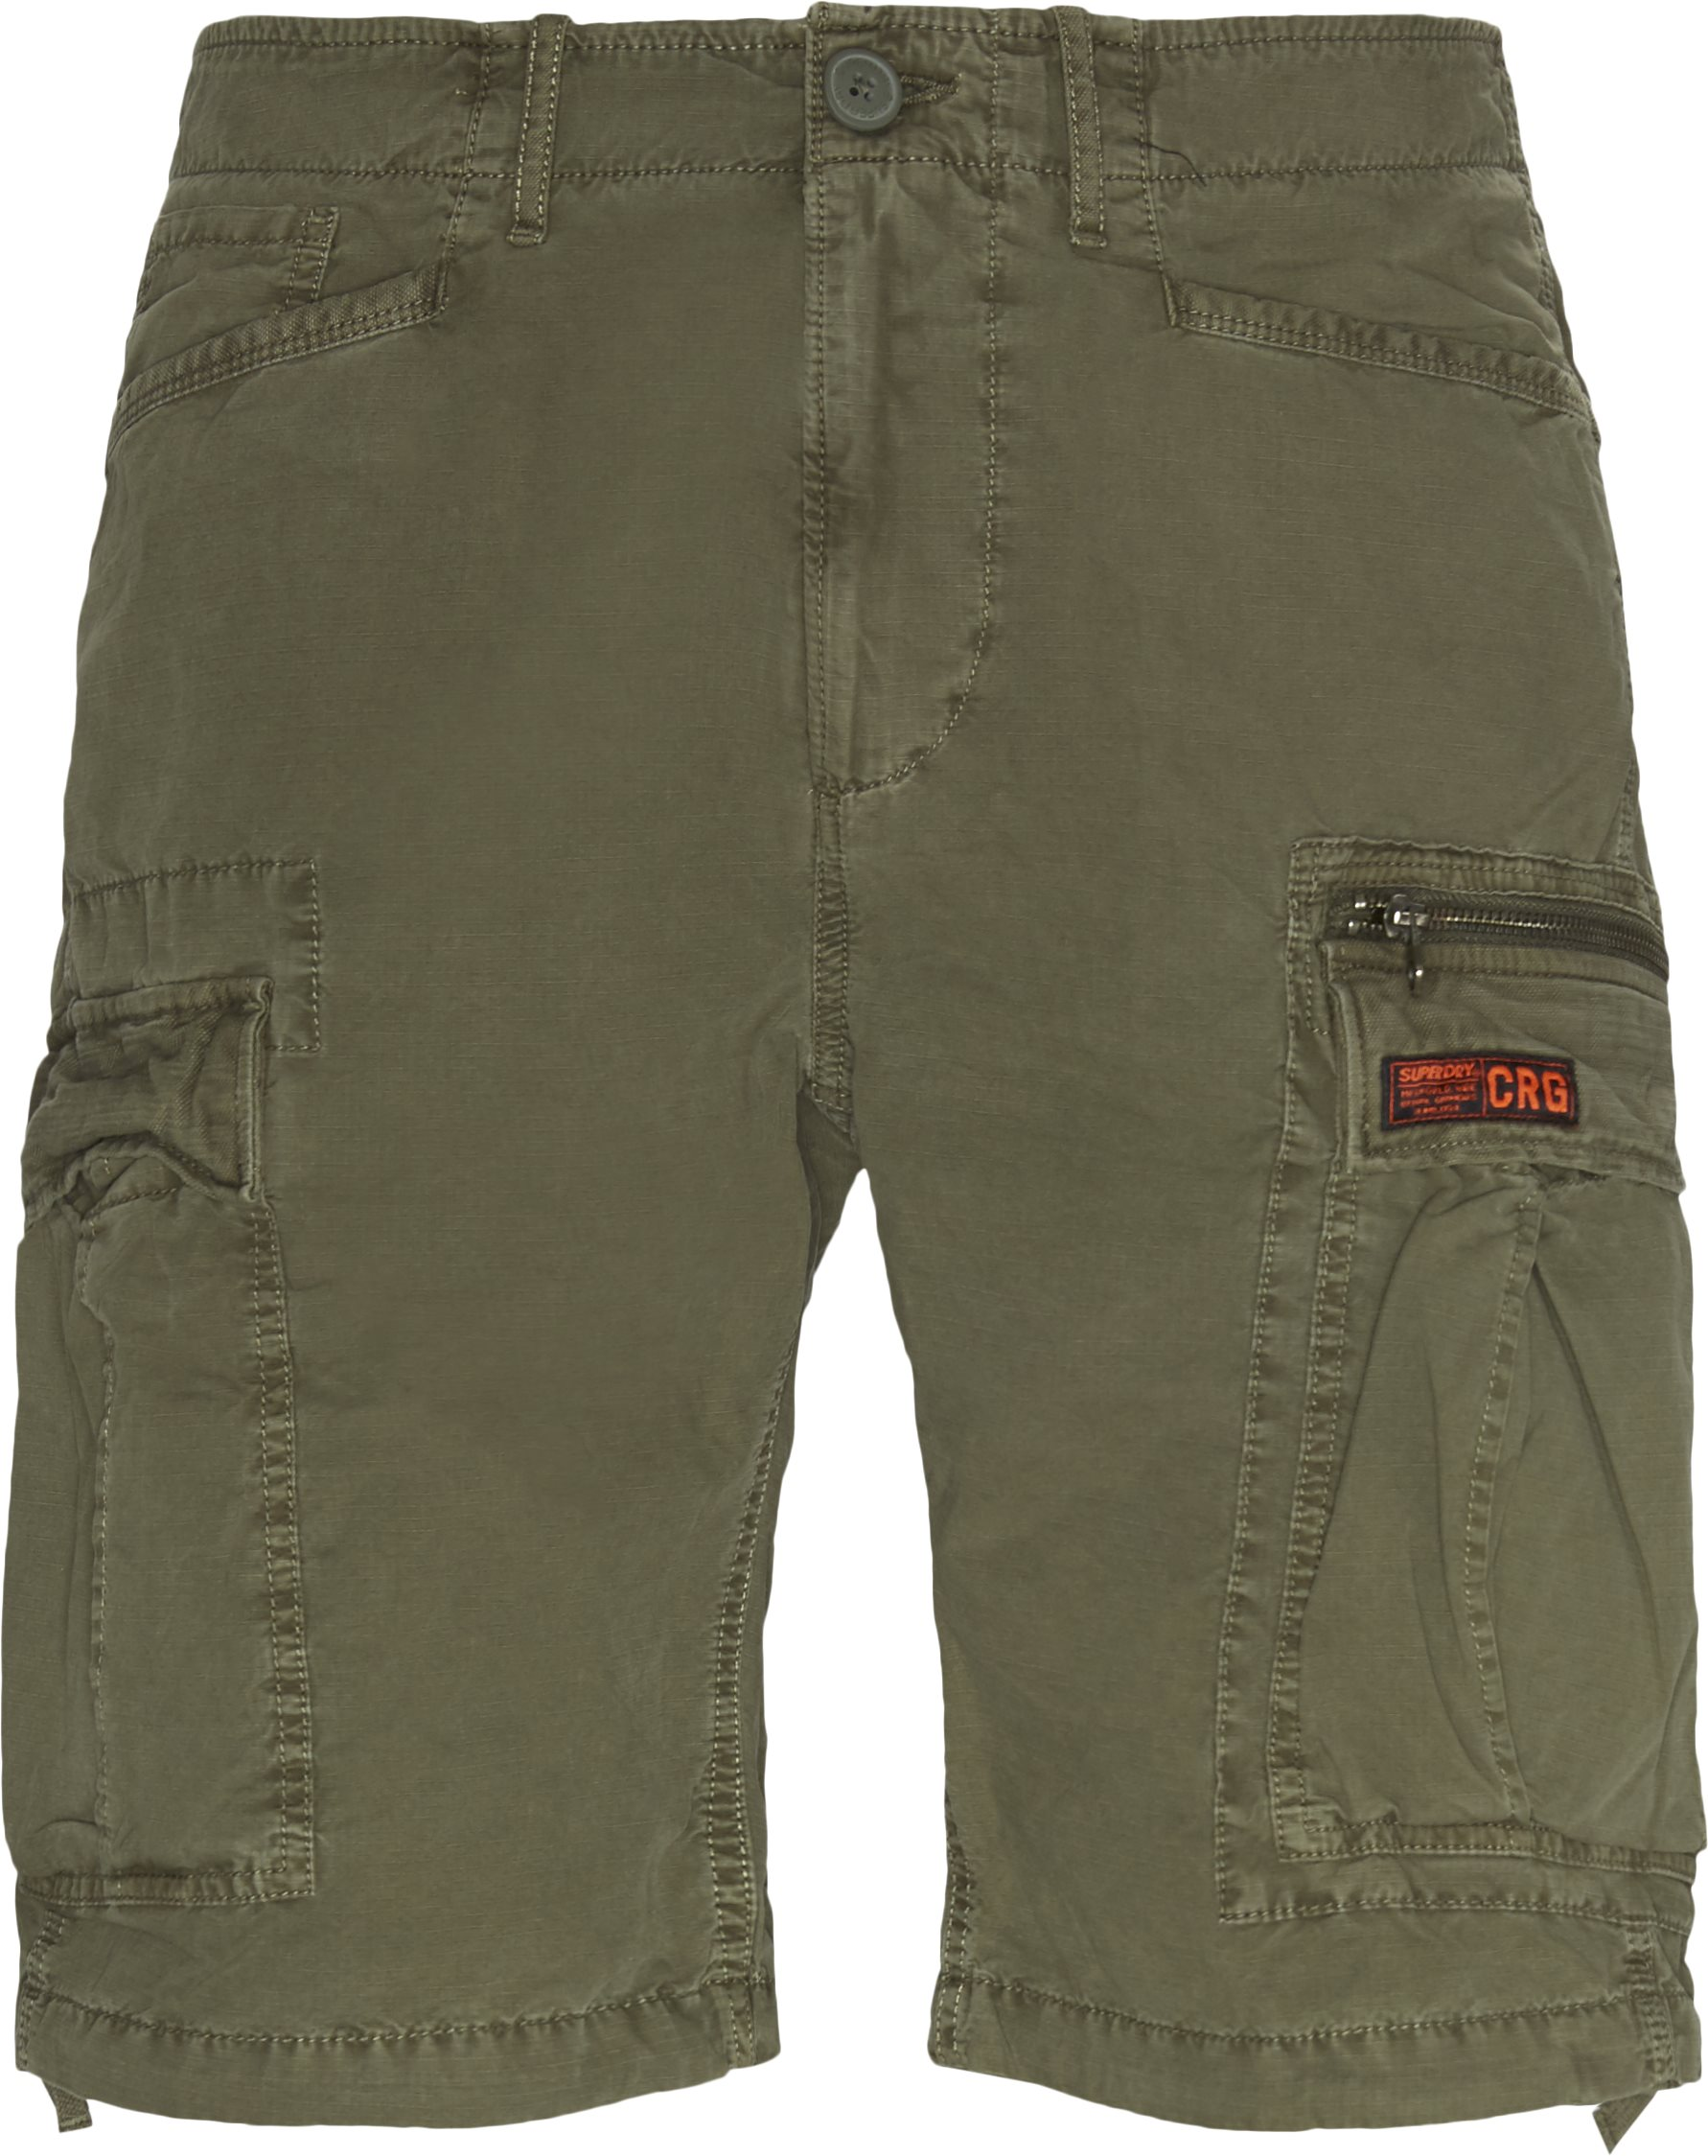 Shorts - Regular - Grön